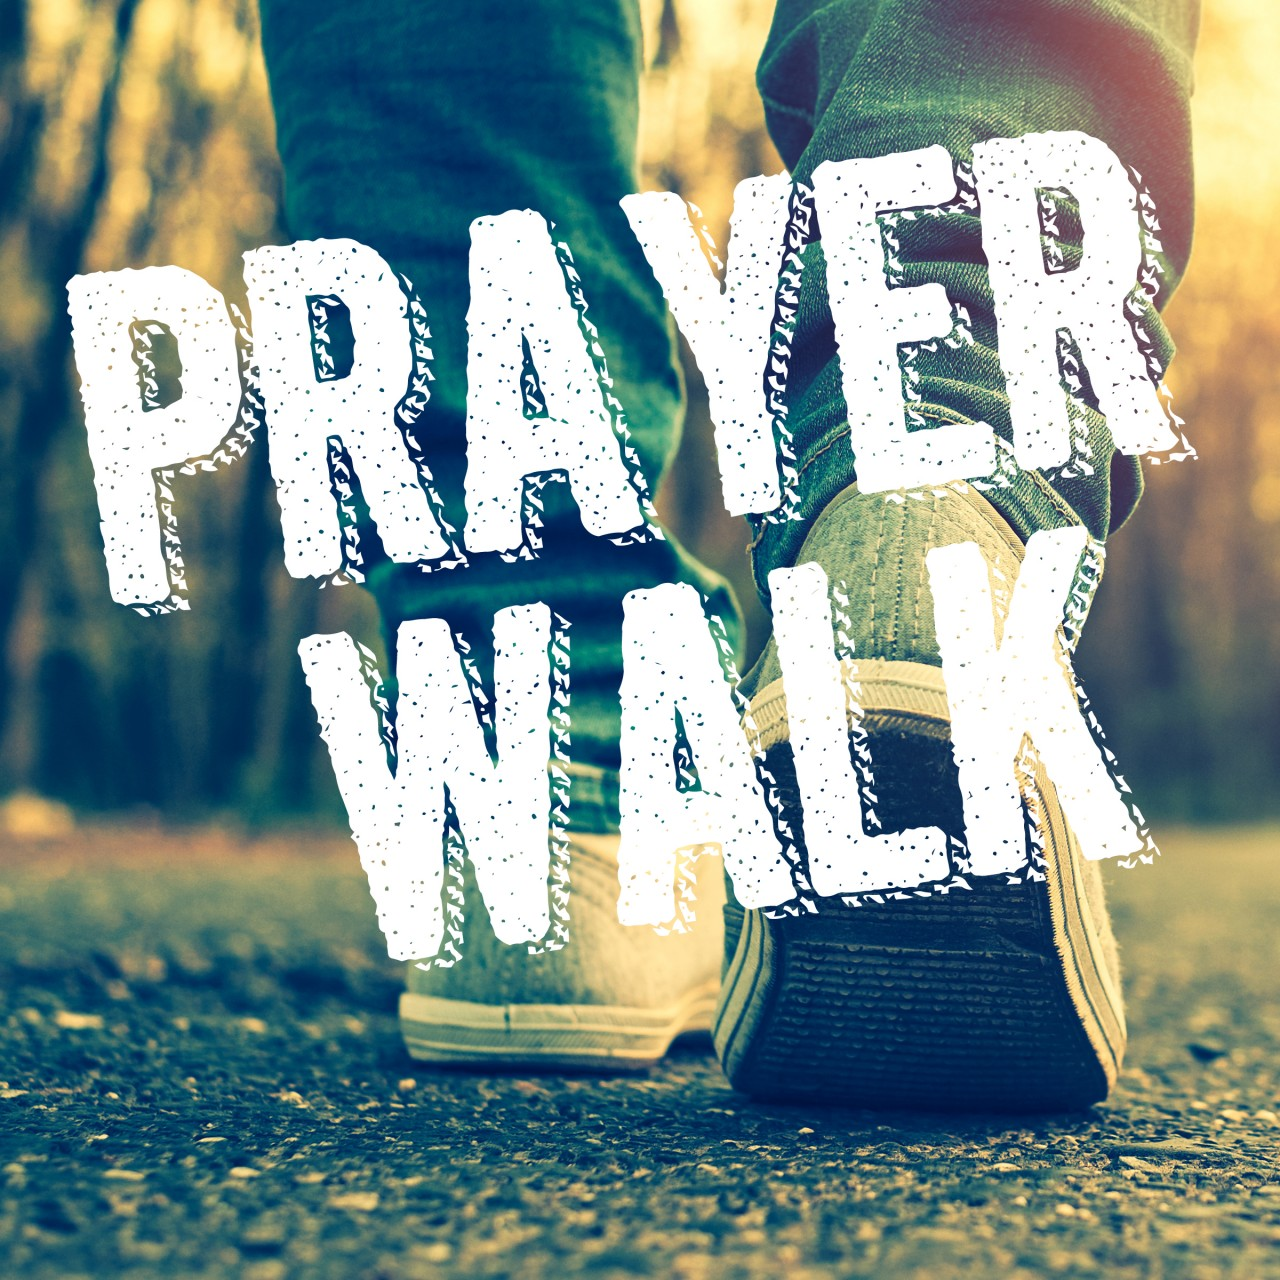 Prayer Walk for Life